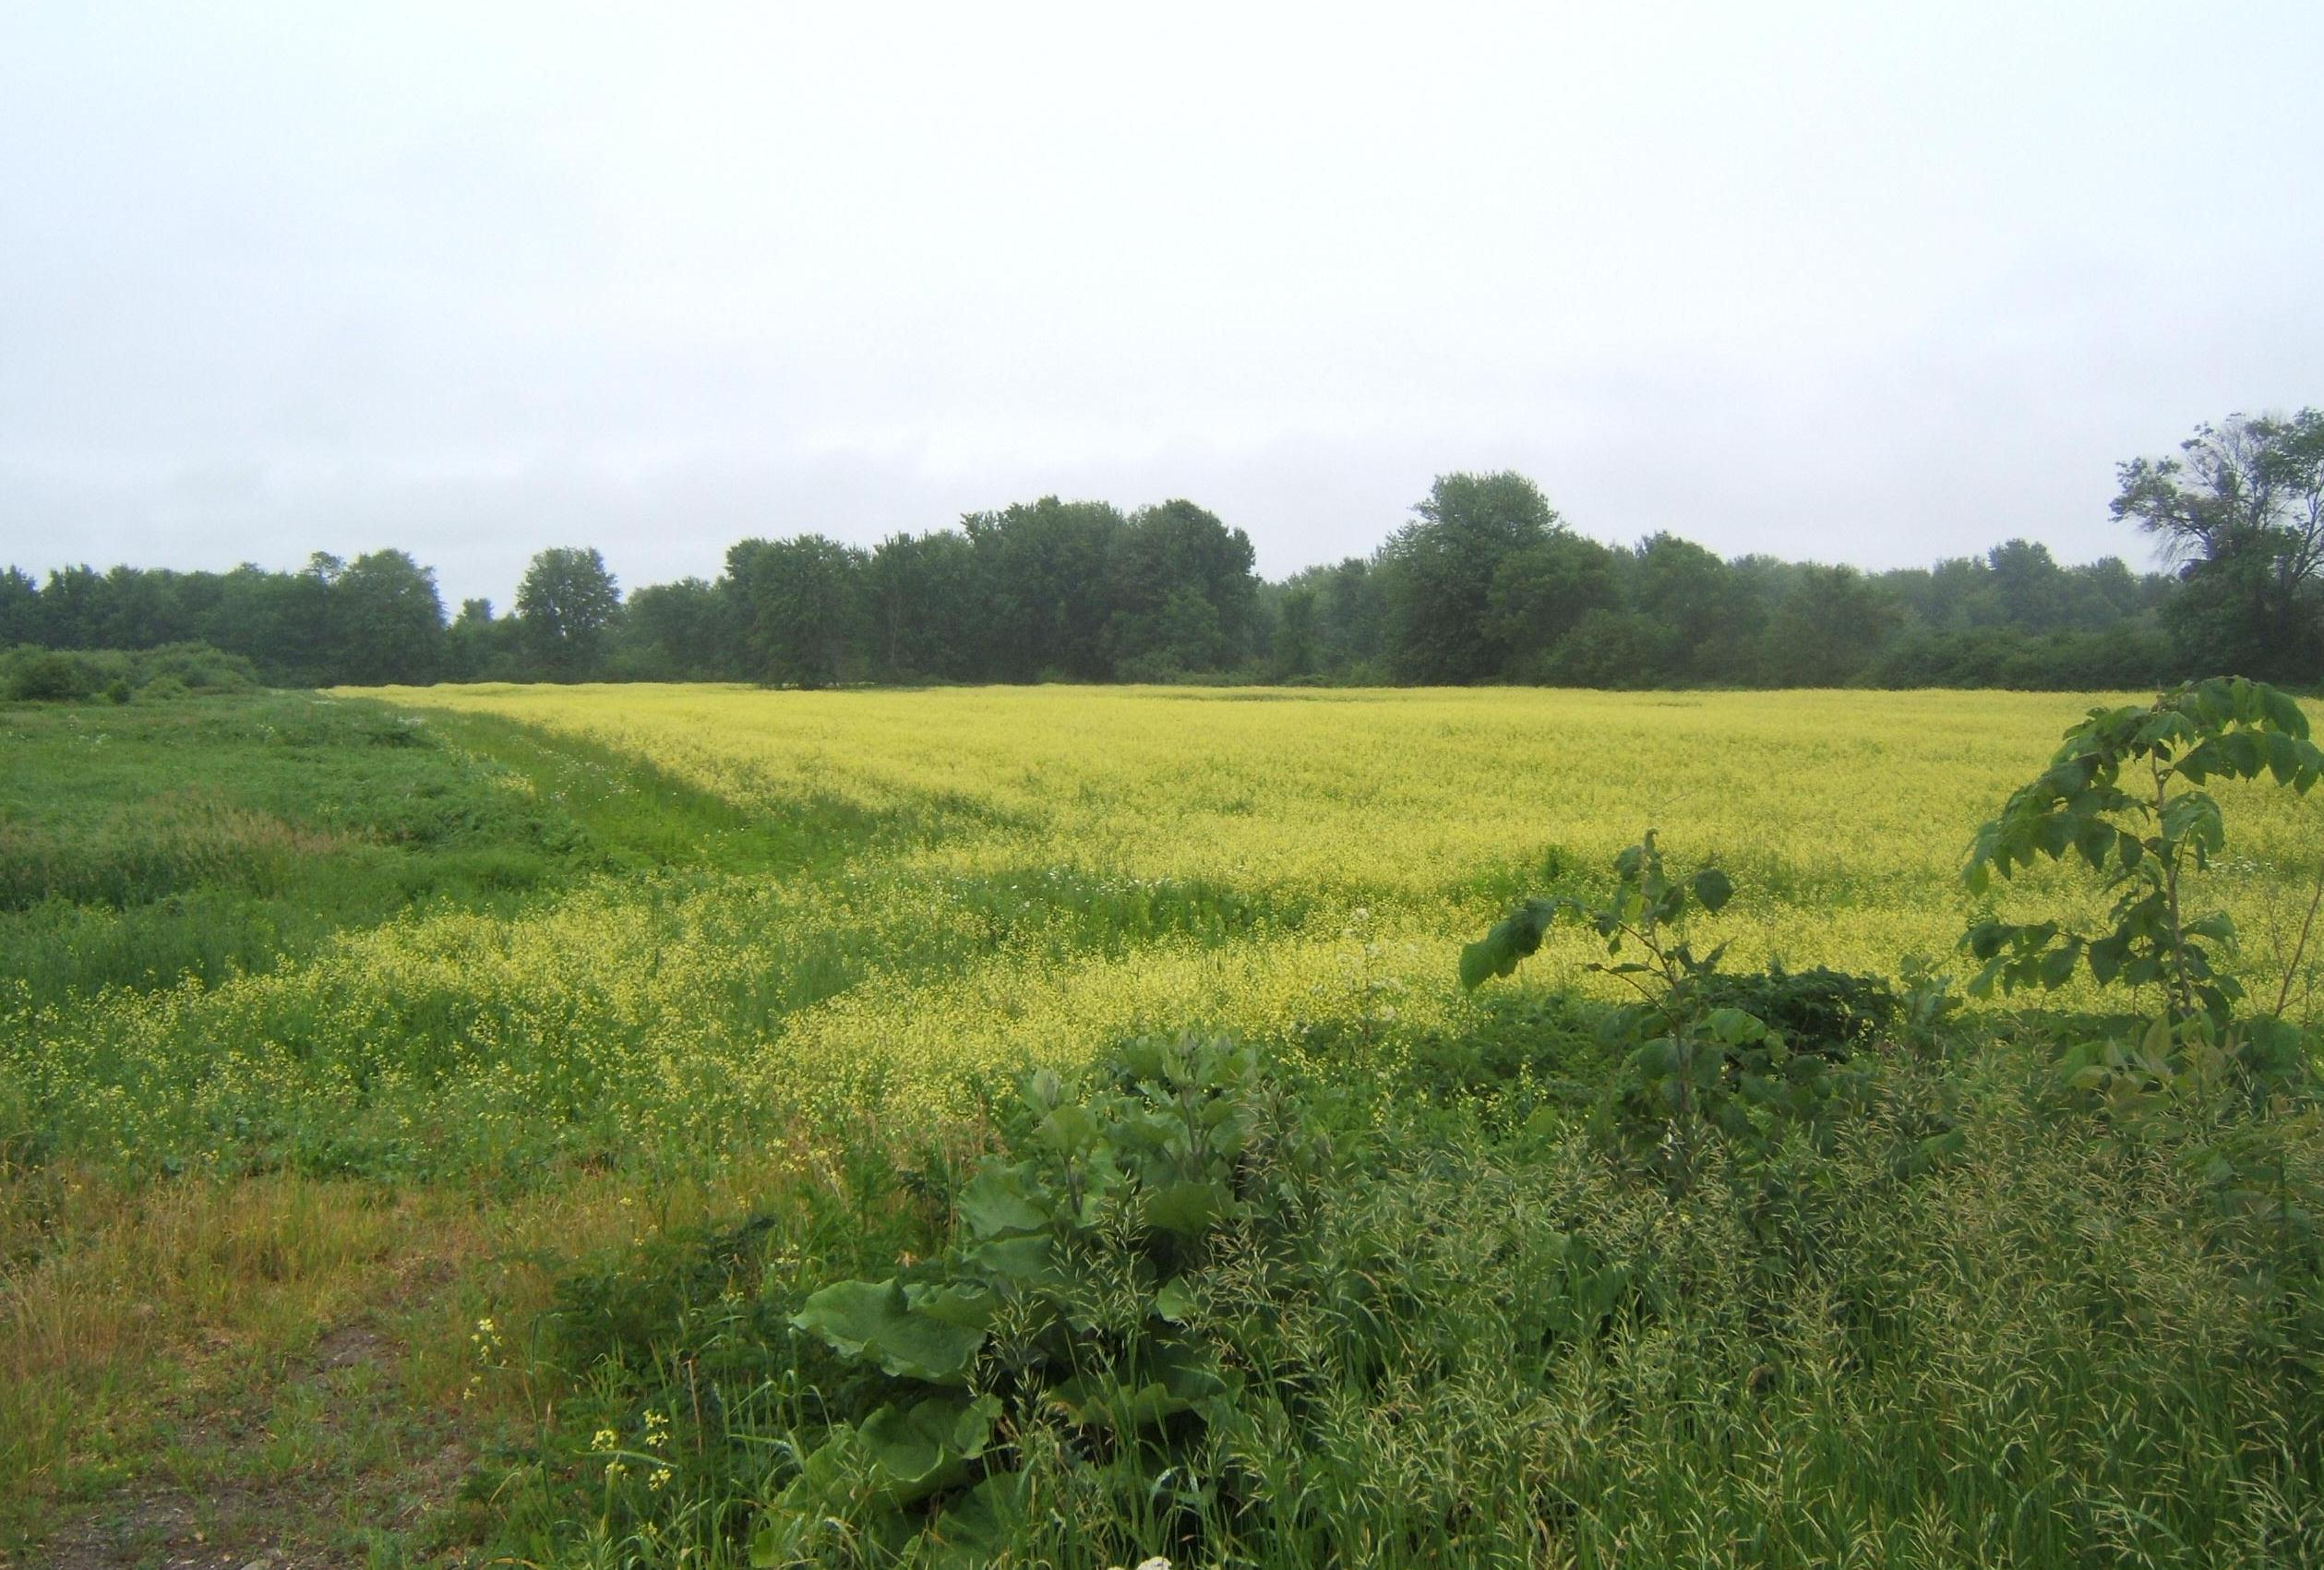 A Moment Of Beautiful Mustard Fields In Bloom Nichepoetryandprose